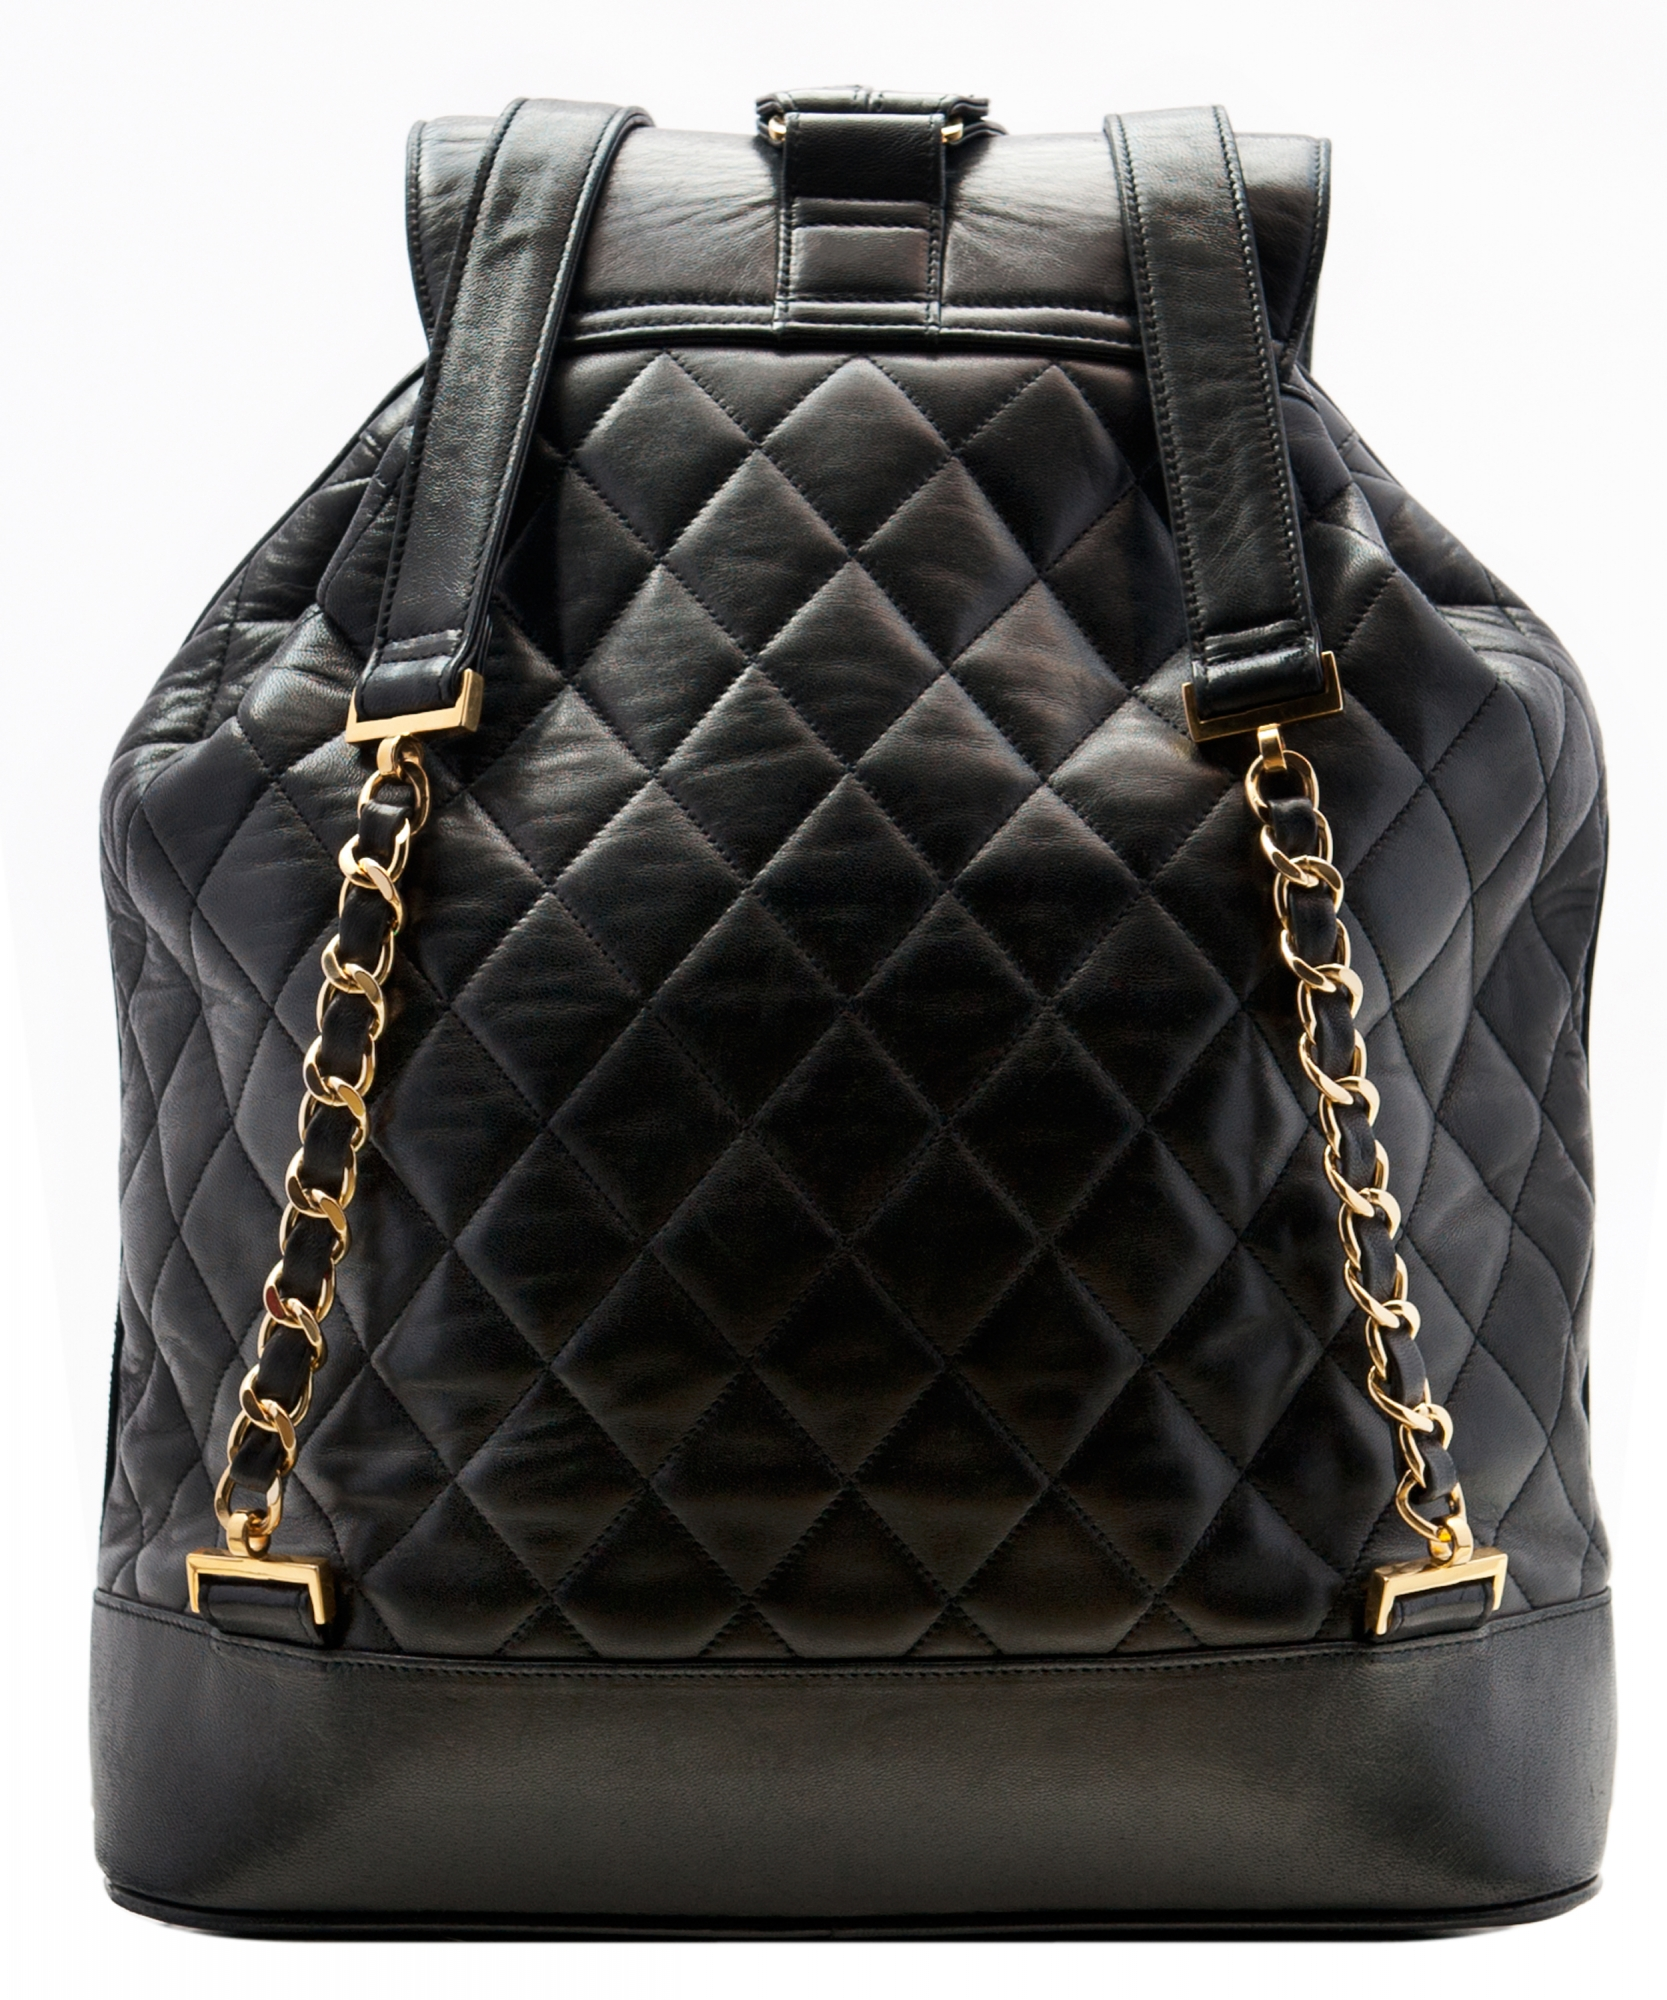 f2c782905588fd Chanel Black Lambskin Leather Jumbo Backpack | La Doyenne